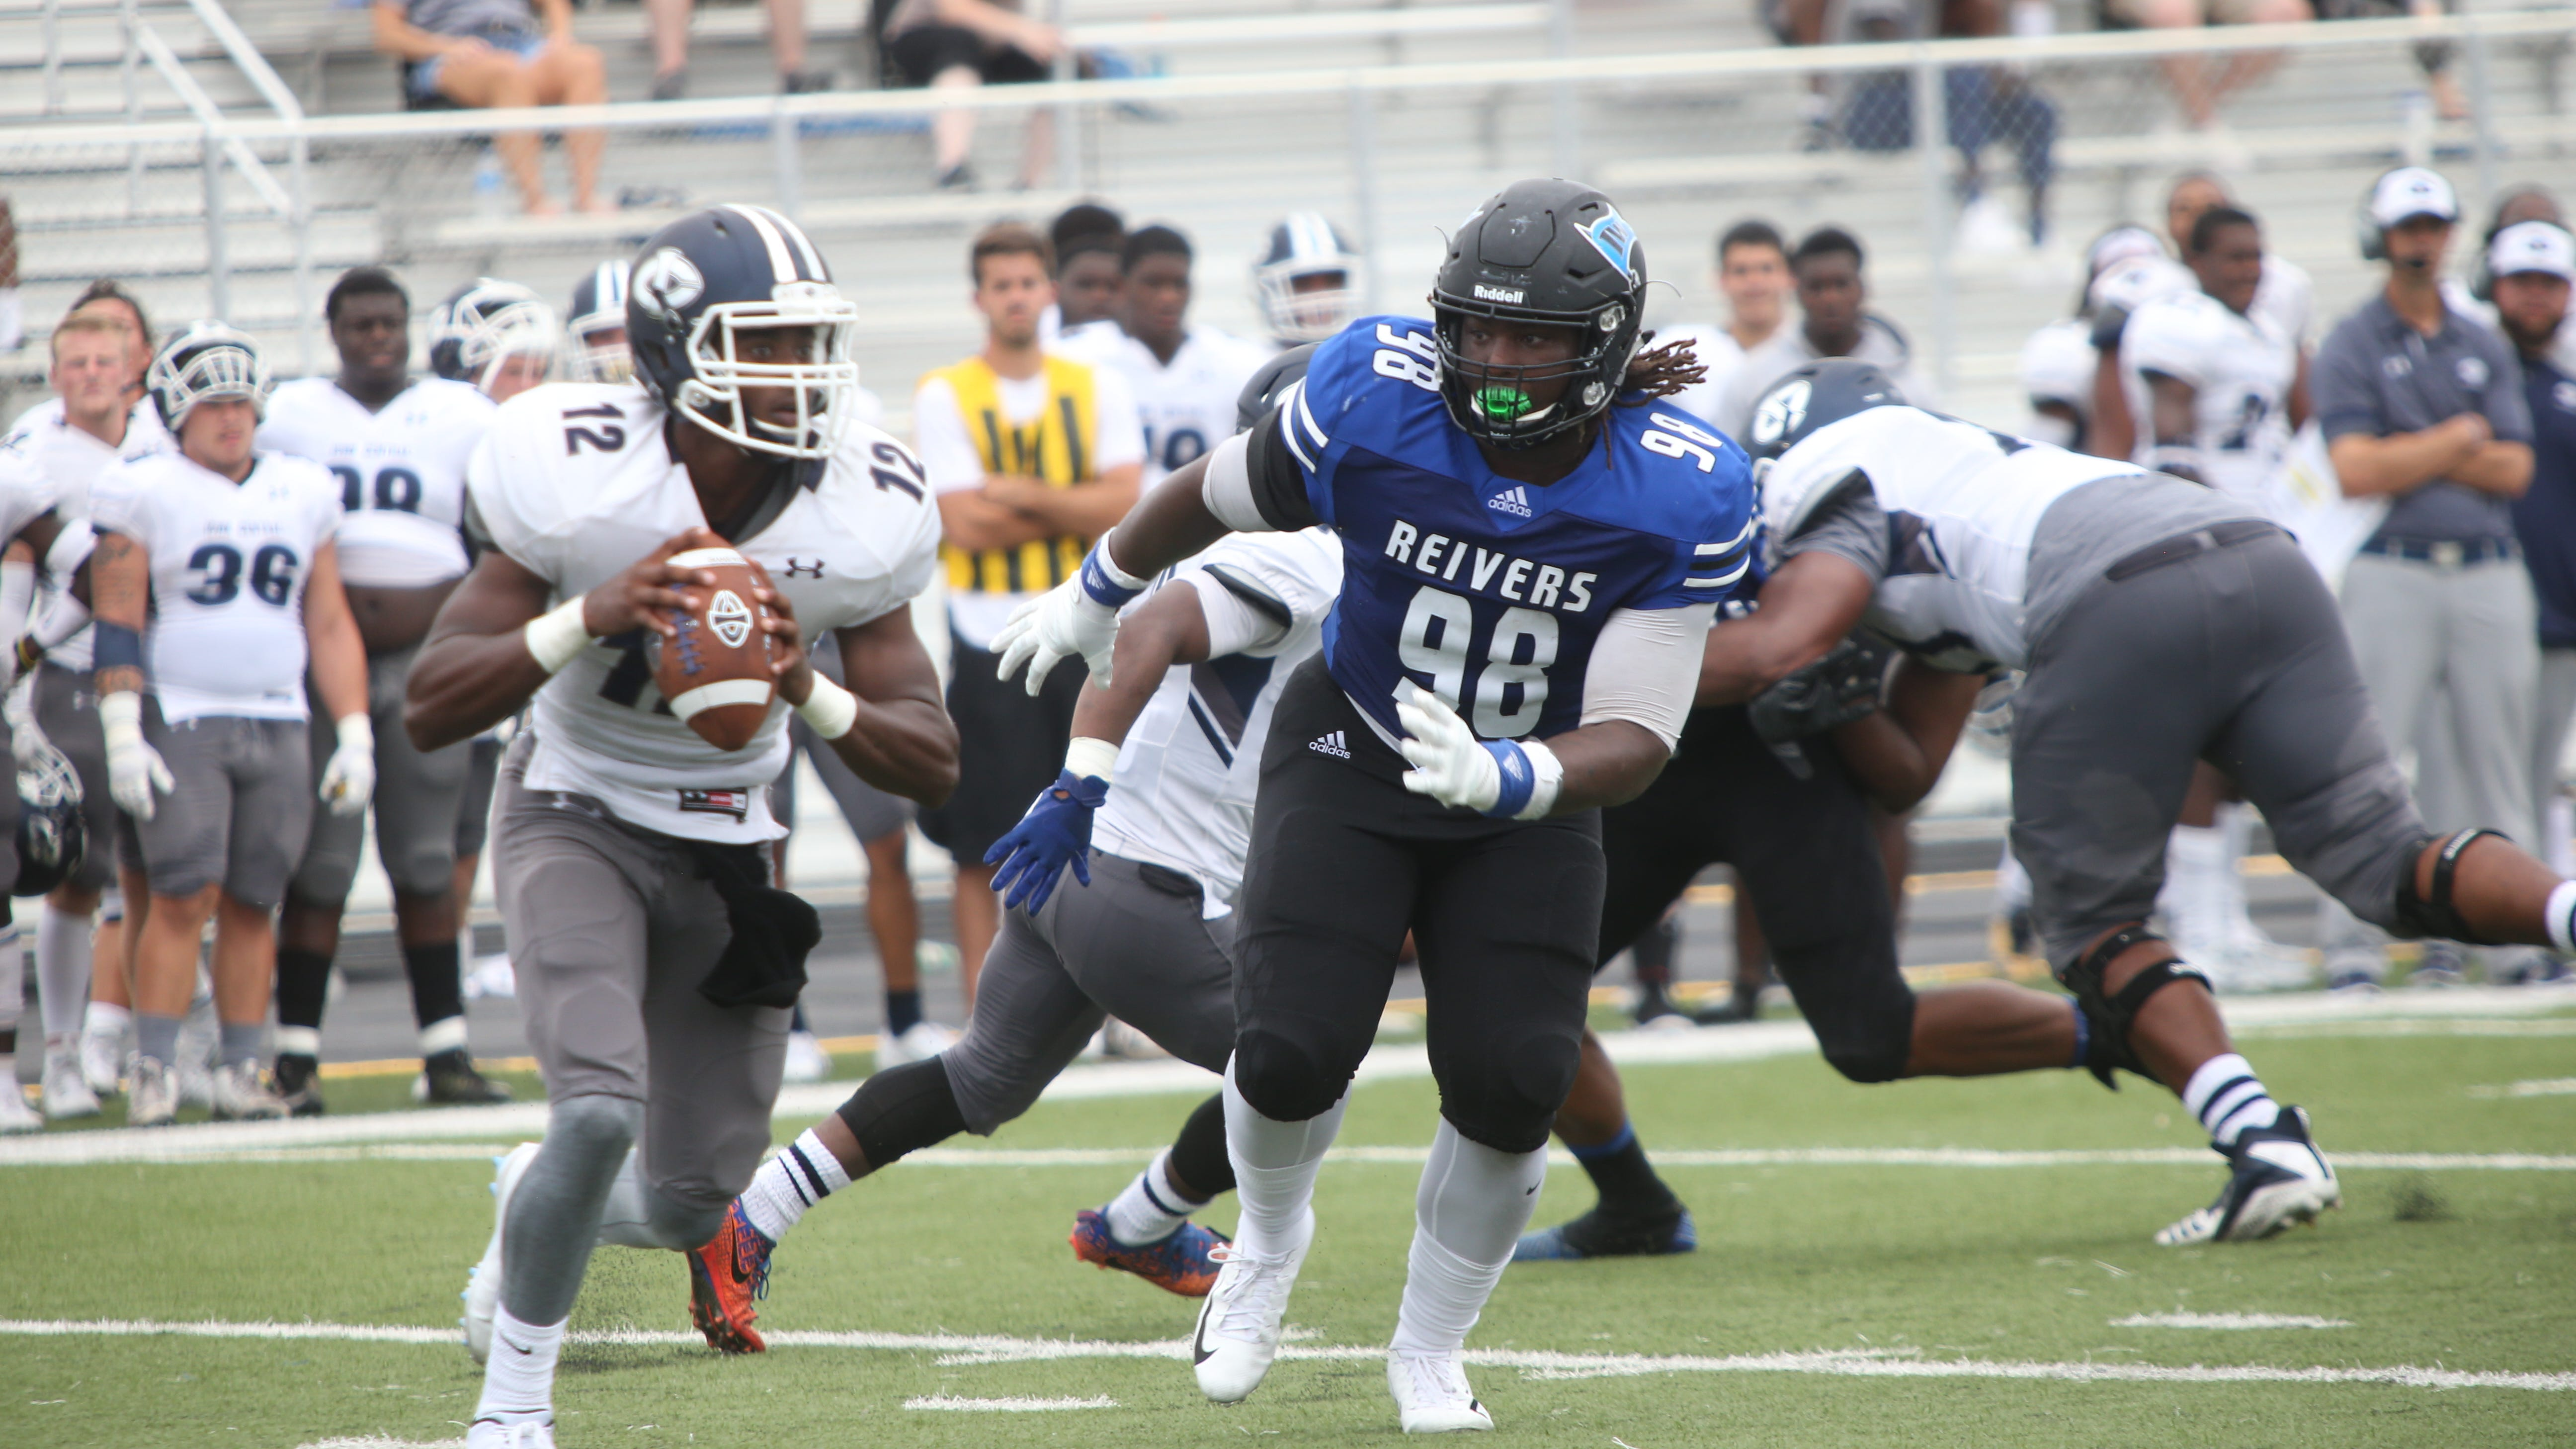 Iowa Western defensive tackle Atlias Bell (98) is receiving recruiting interest from Iowa and Iowa State, among others.